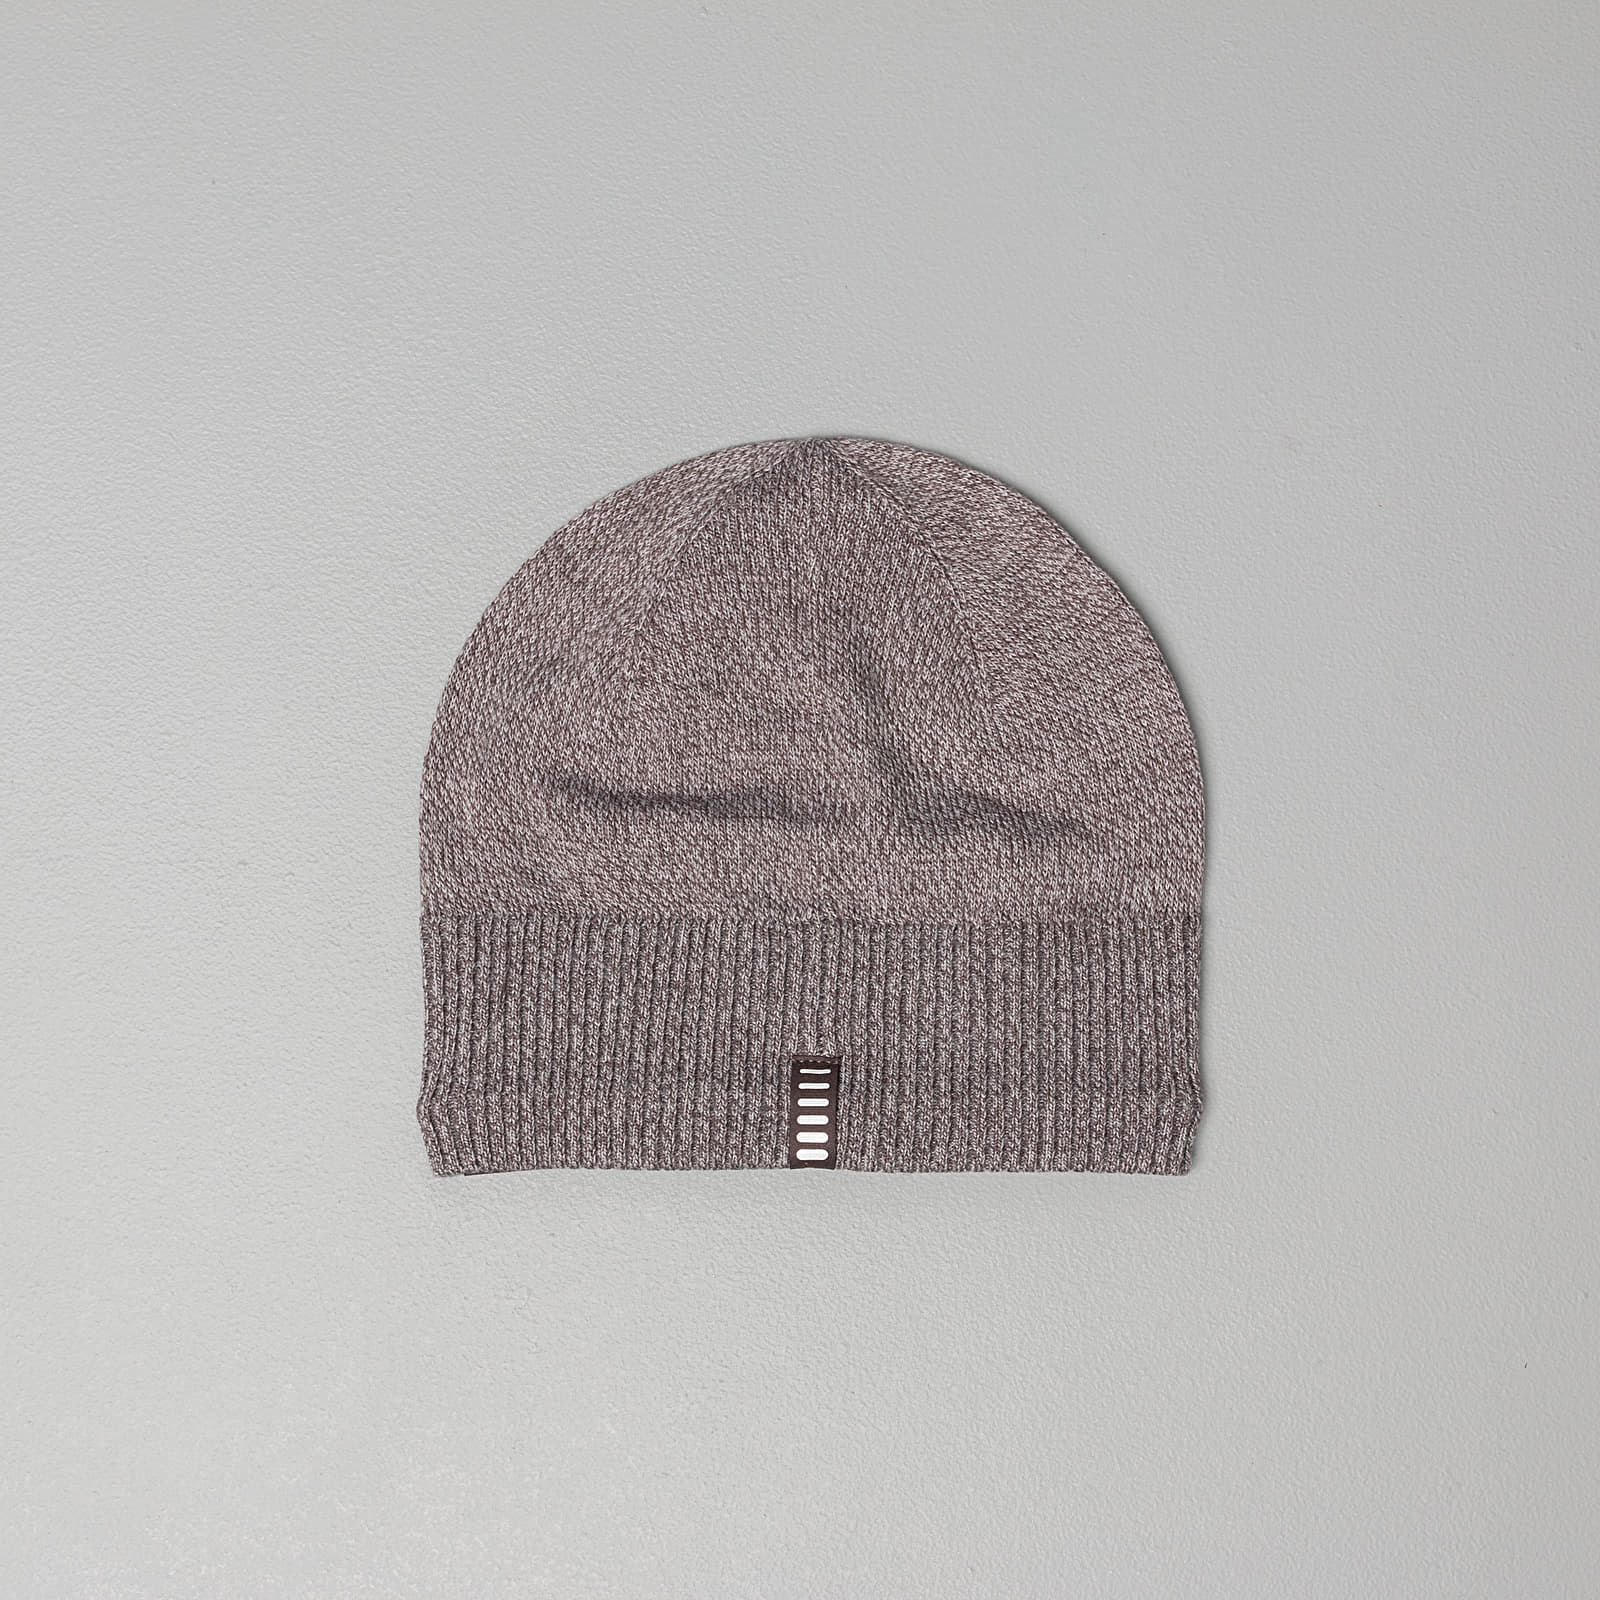 Hats Under Armour Reactor Knit Beanie Grey